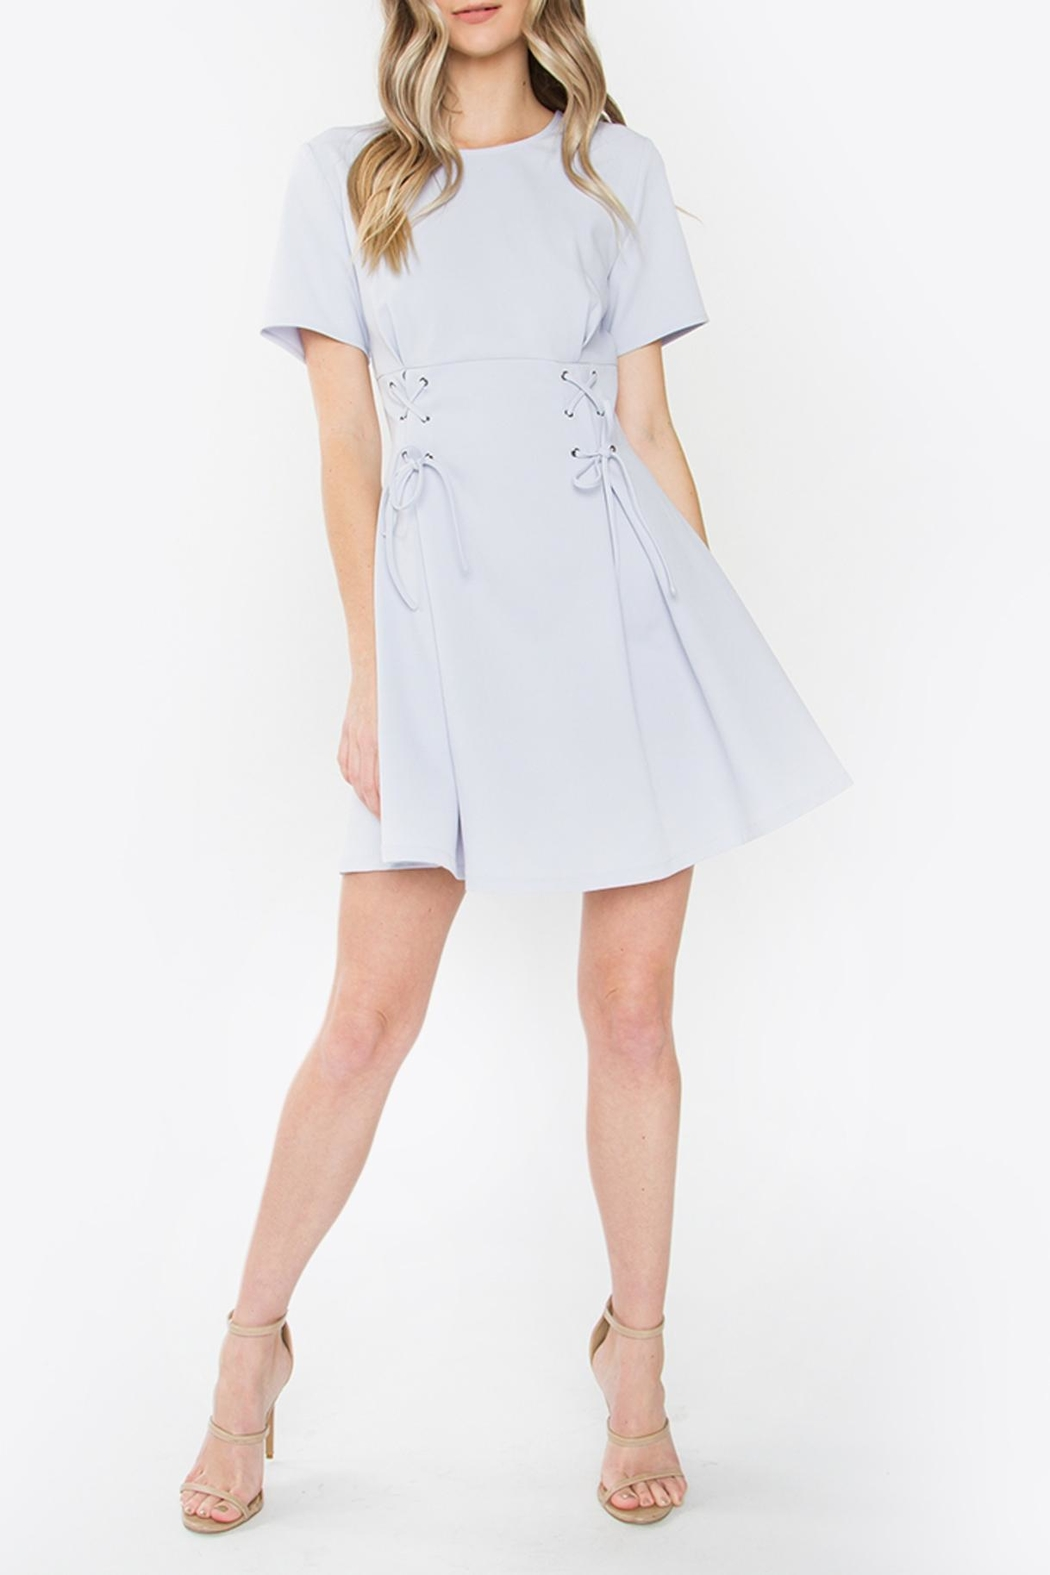 Sugarlips Lace-Up Fit-And-Flare Dress - Front Full Image